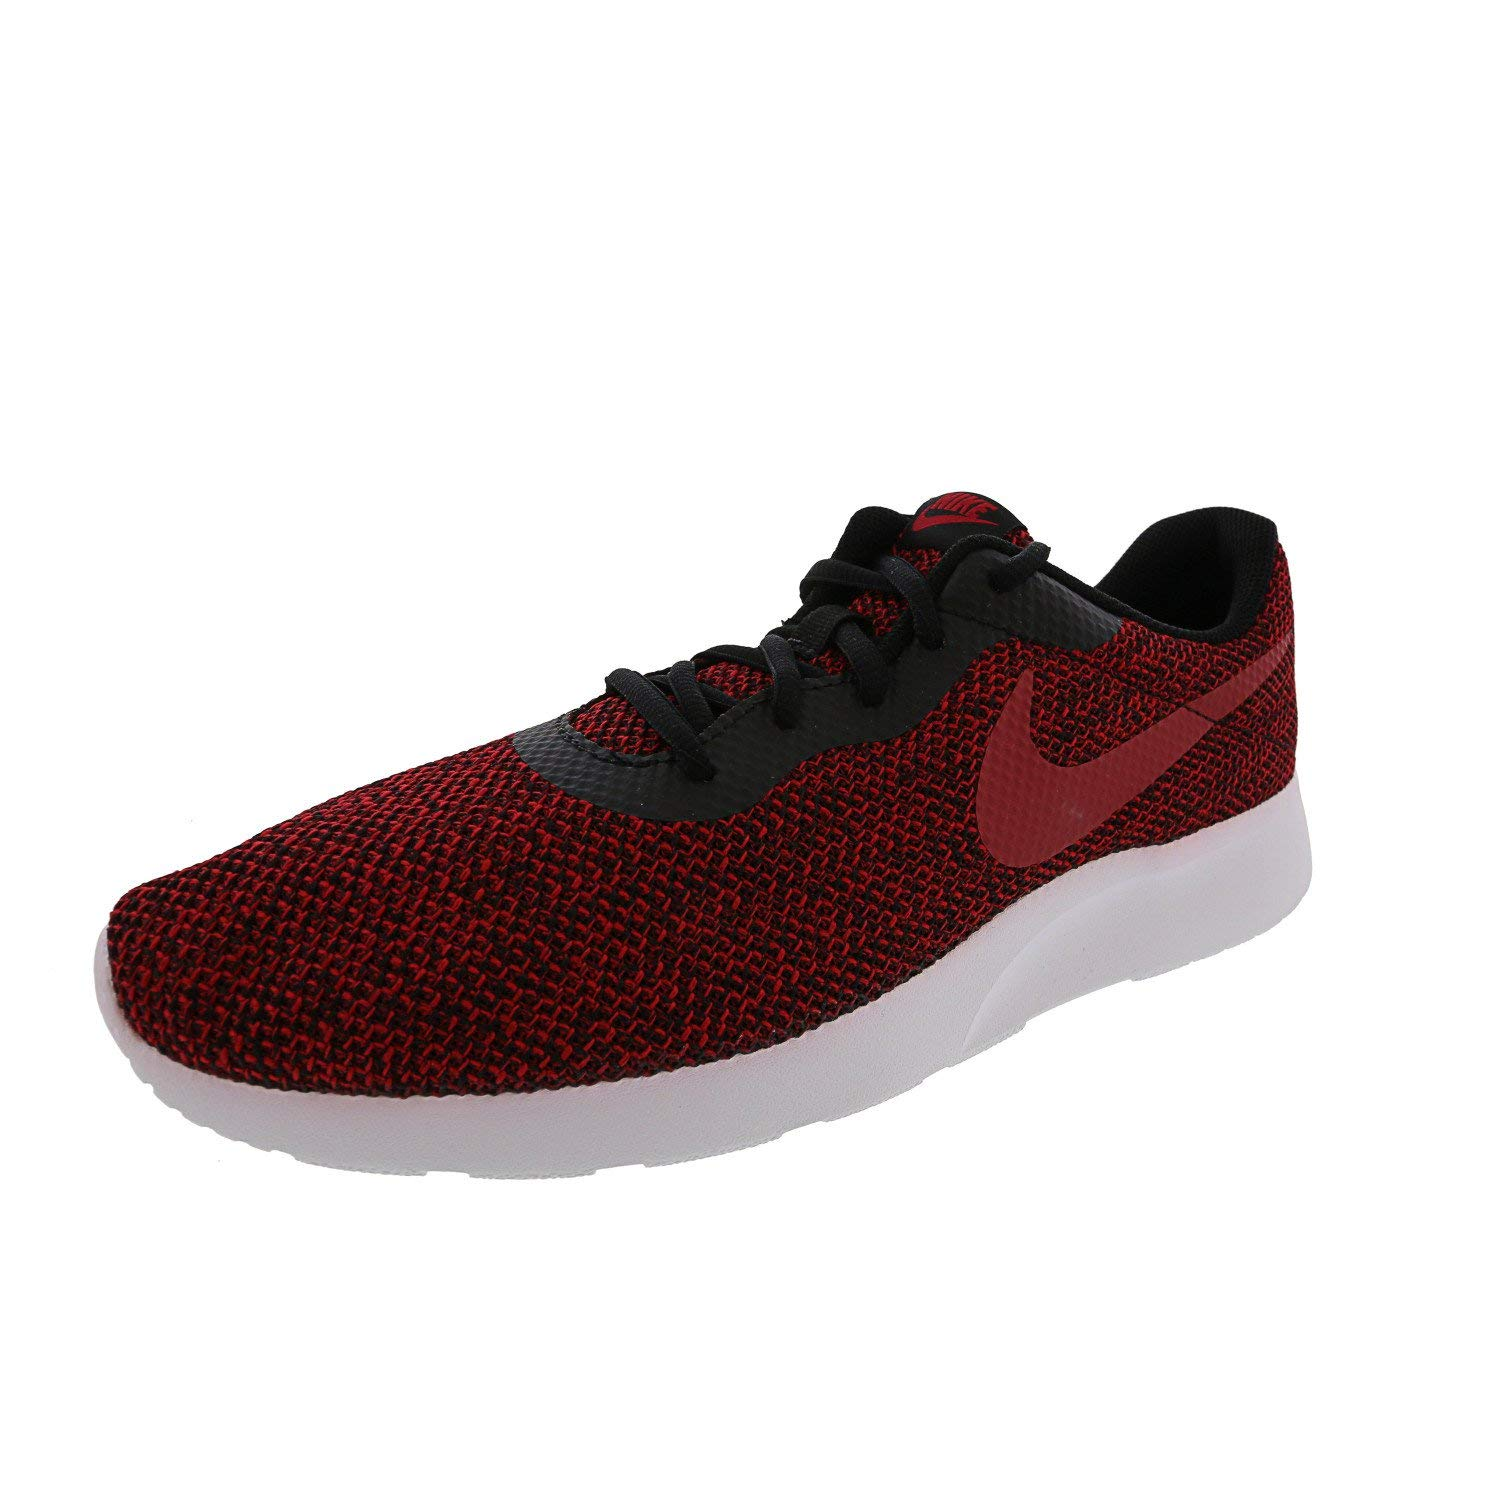 Nike AR1941-003: Men's Tanjun SE Black/Gym Red/White Running Shoe (10.5 D(M) US Men) by Nike